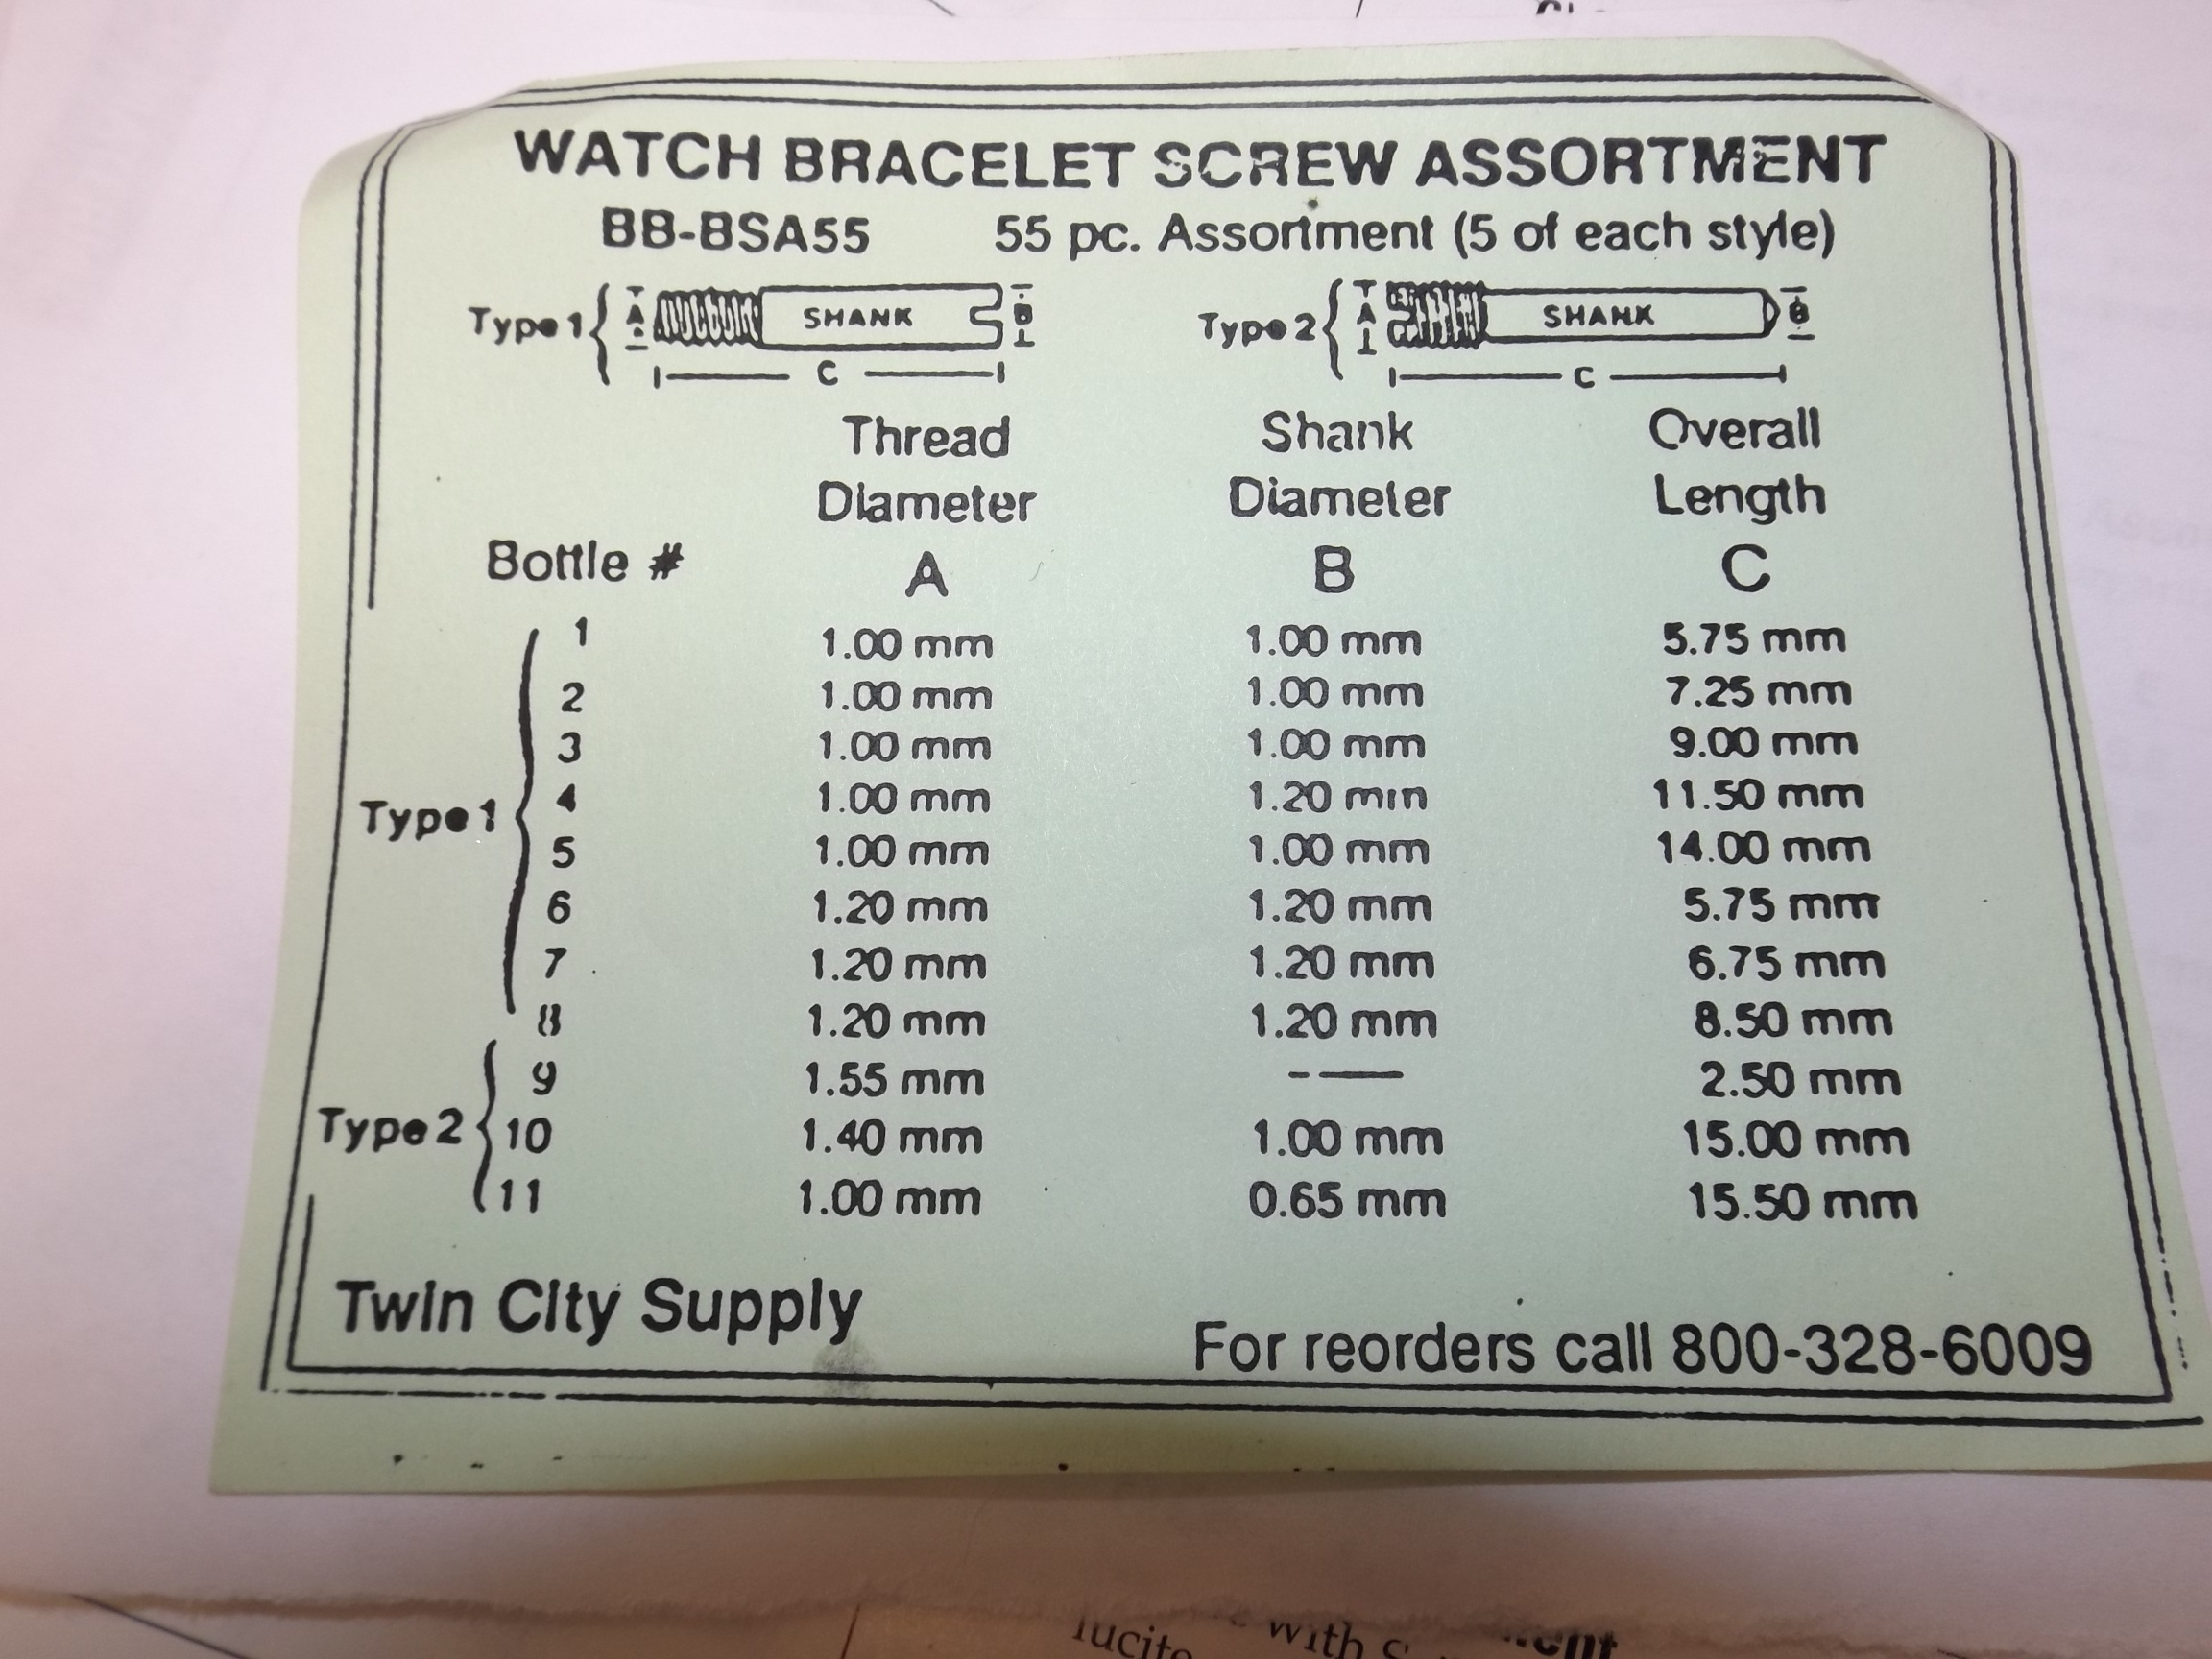 BB-BSA55 Watch Bracelet Screw Assortment-- 55 pieces Acon